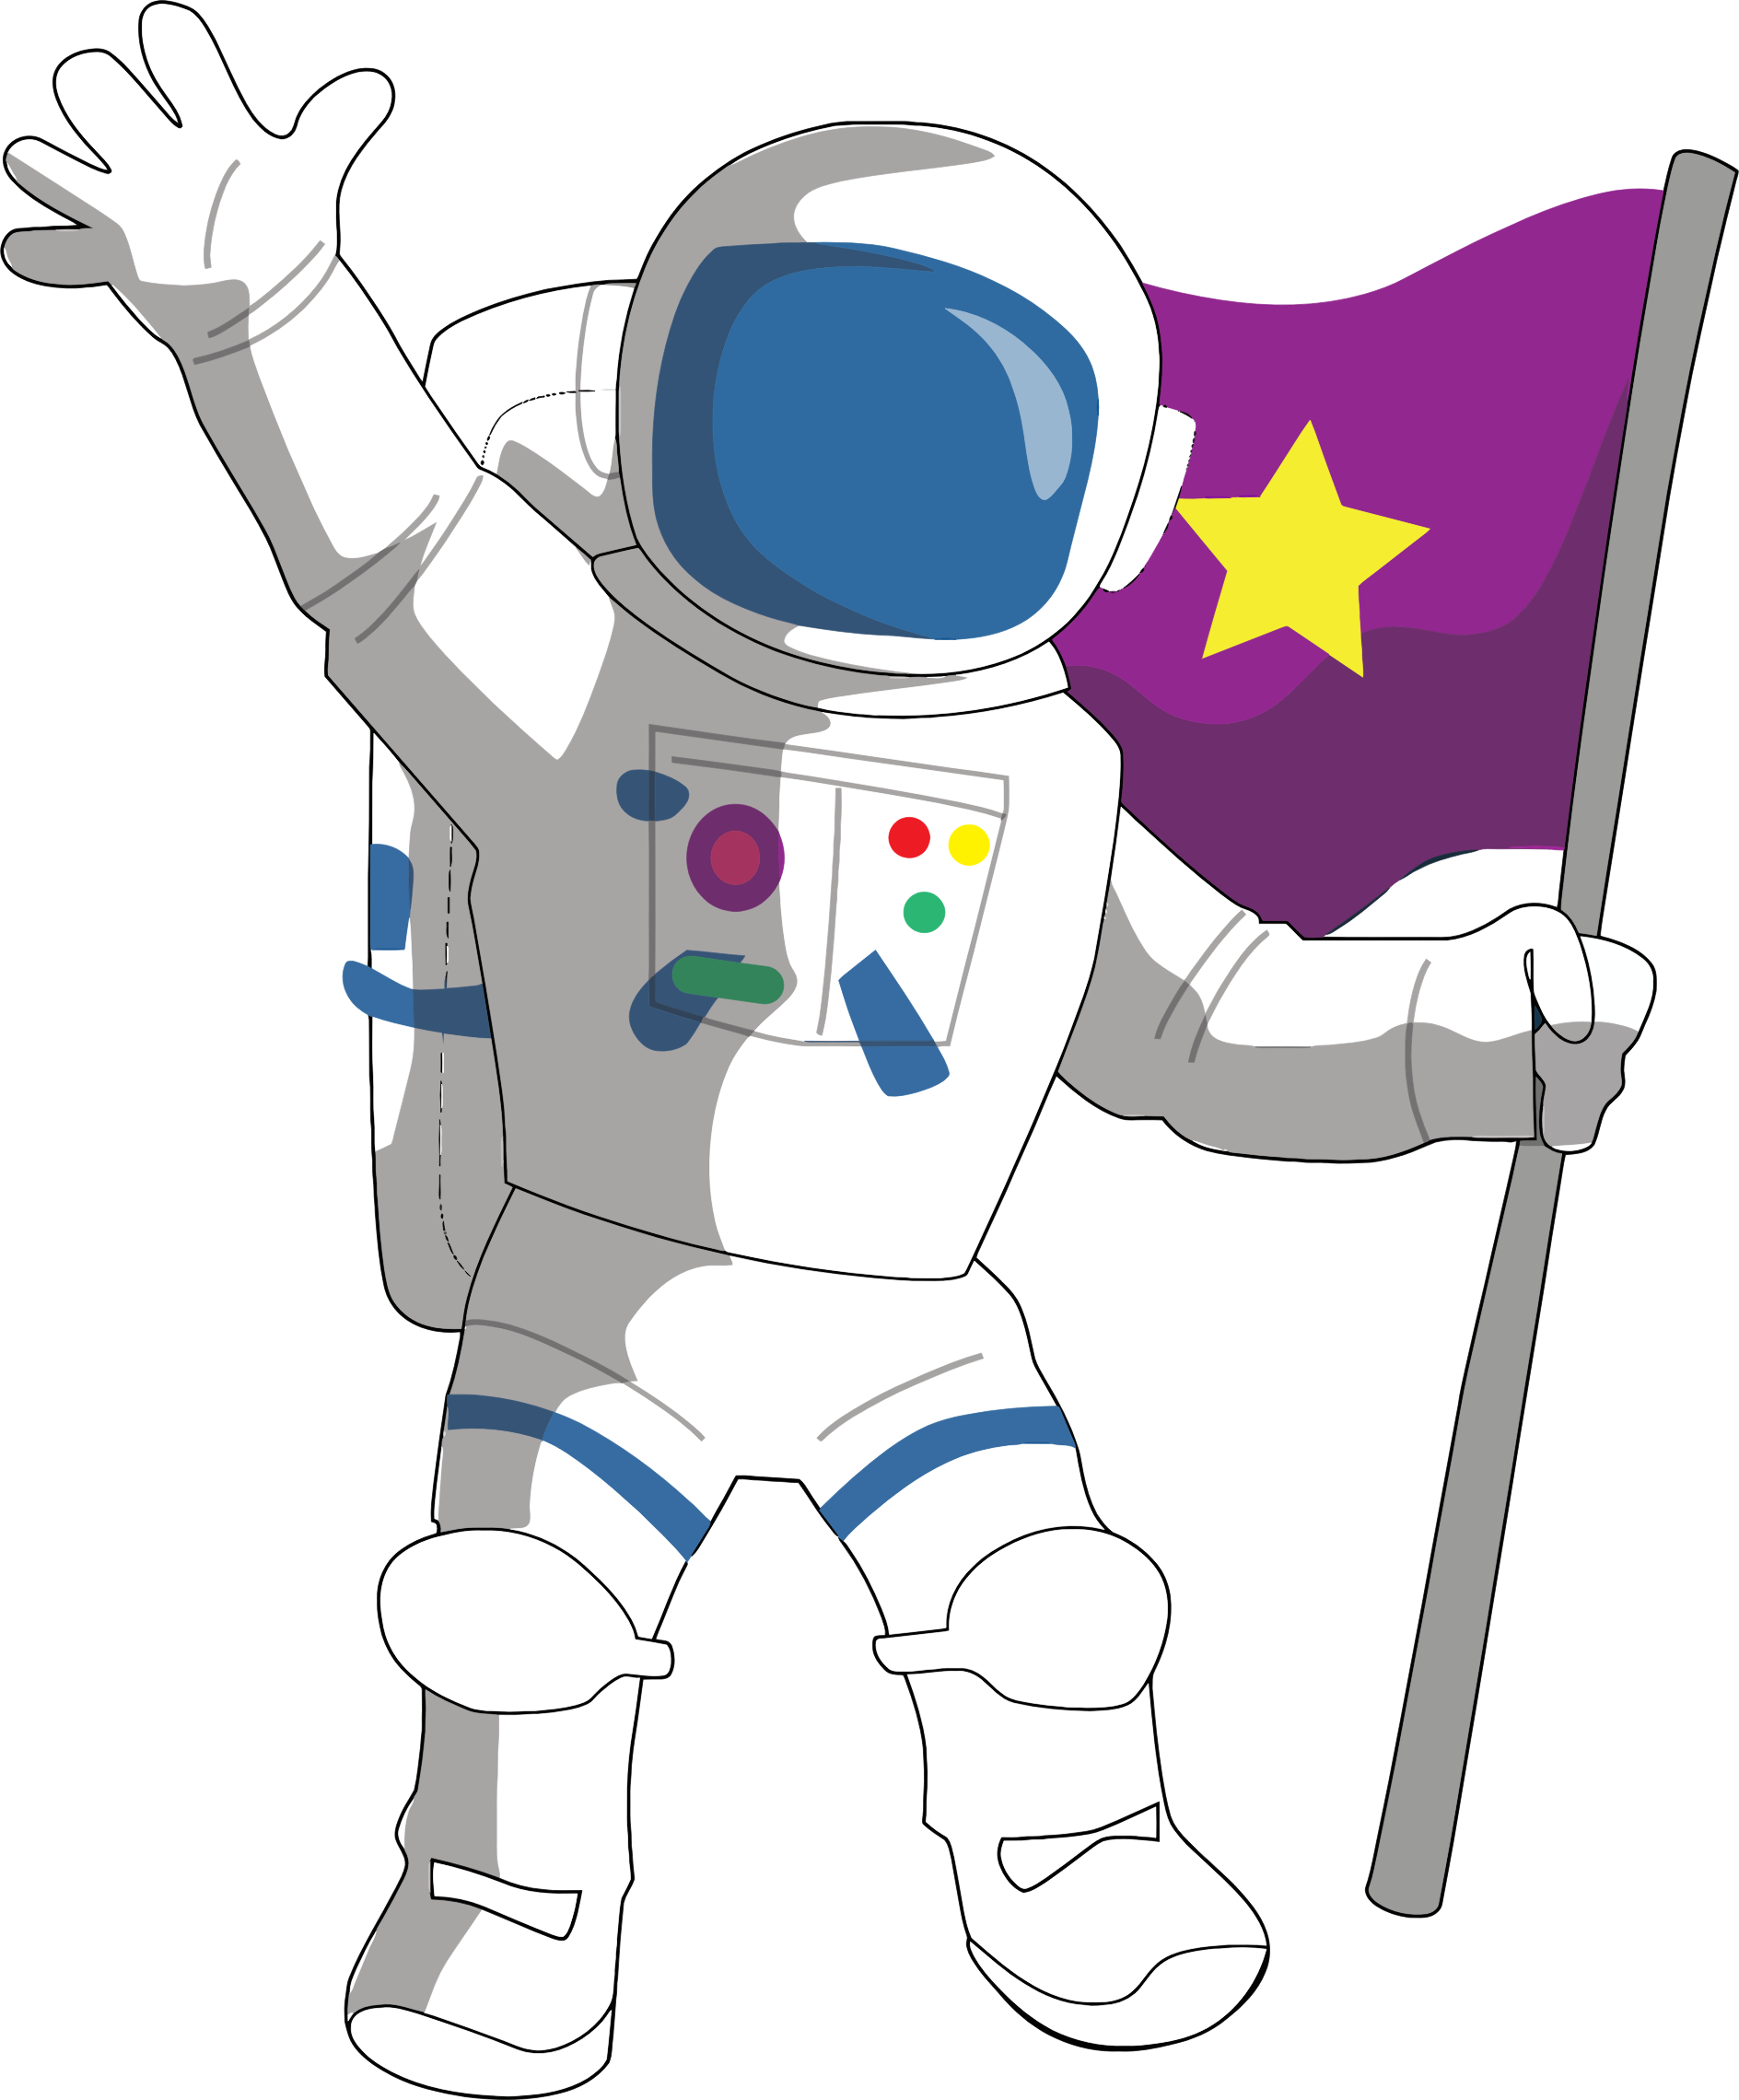 freeuse library Cartoon big image png. Astronaut clipart